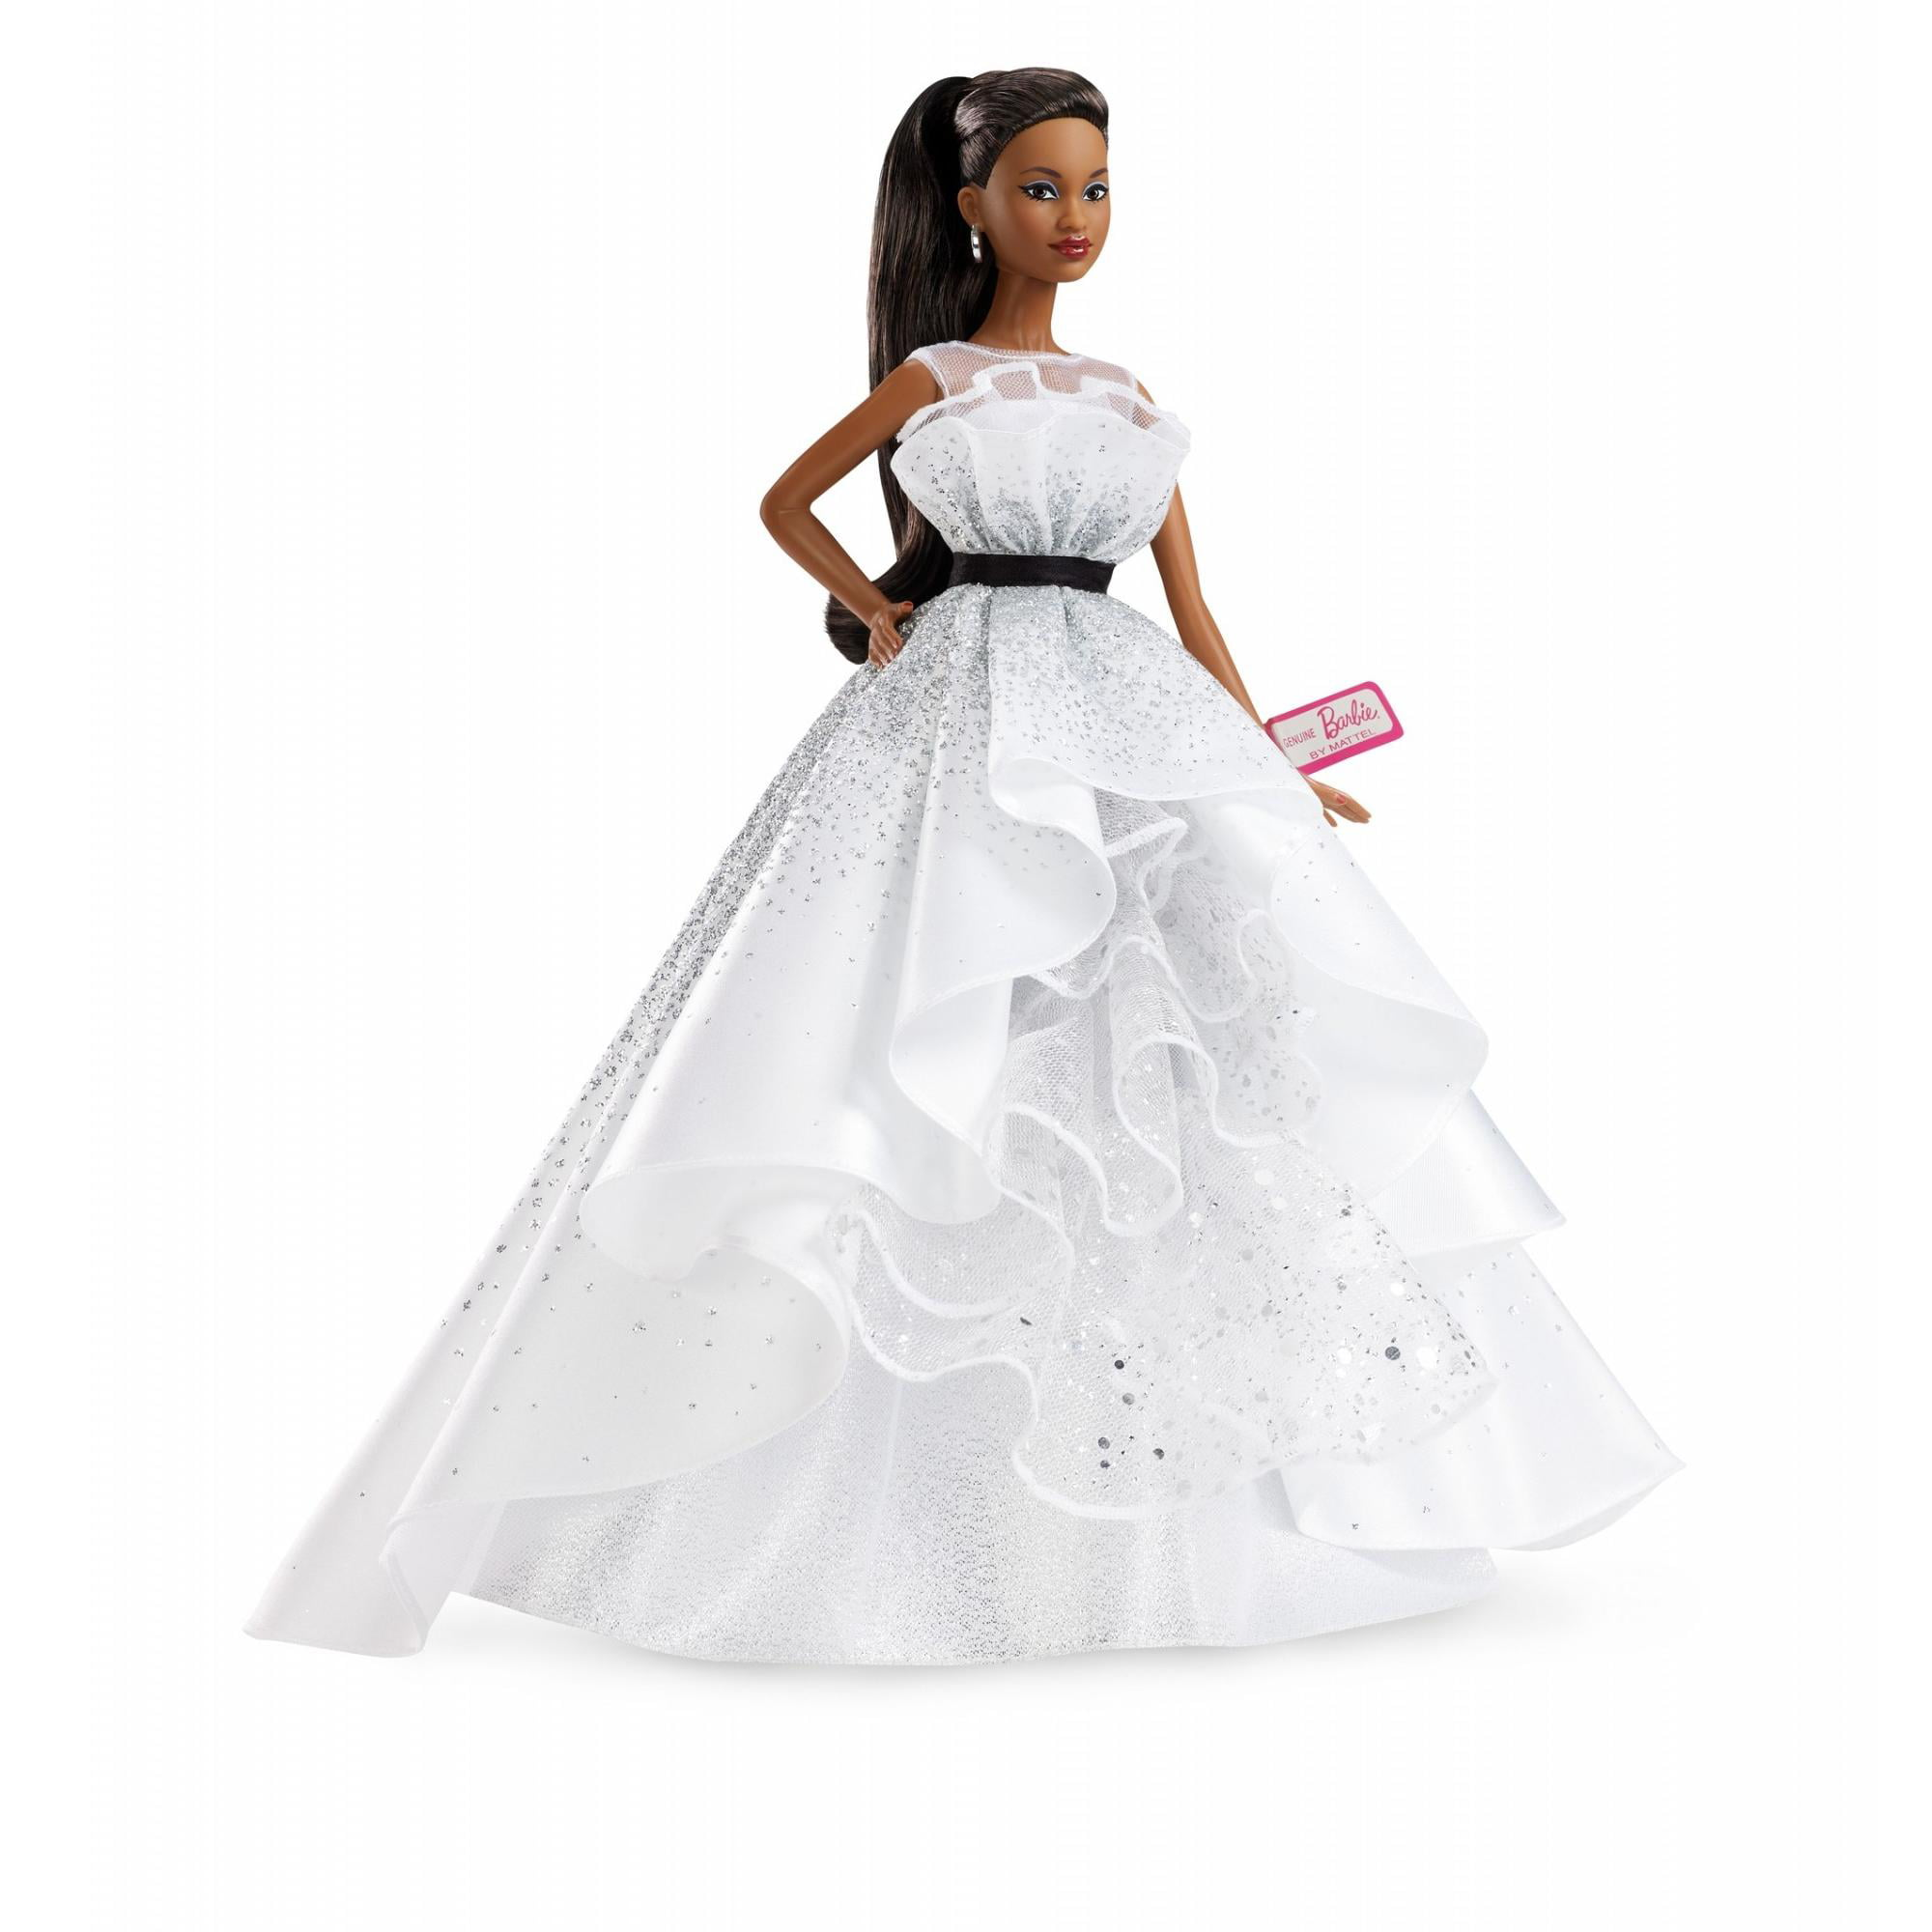 Barbie 60th Anniversary Doll, Brunette Hair & Diamond-Inspired Accents by Mattel